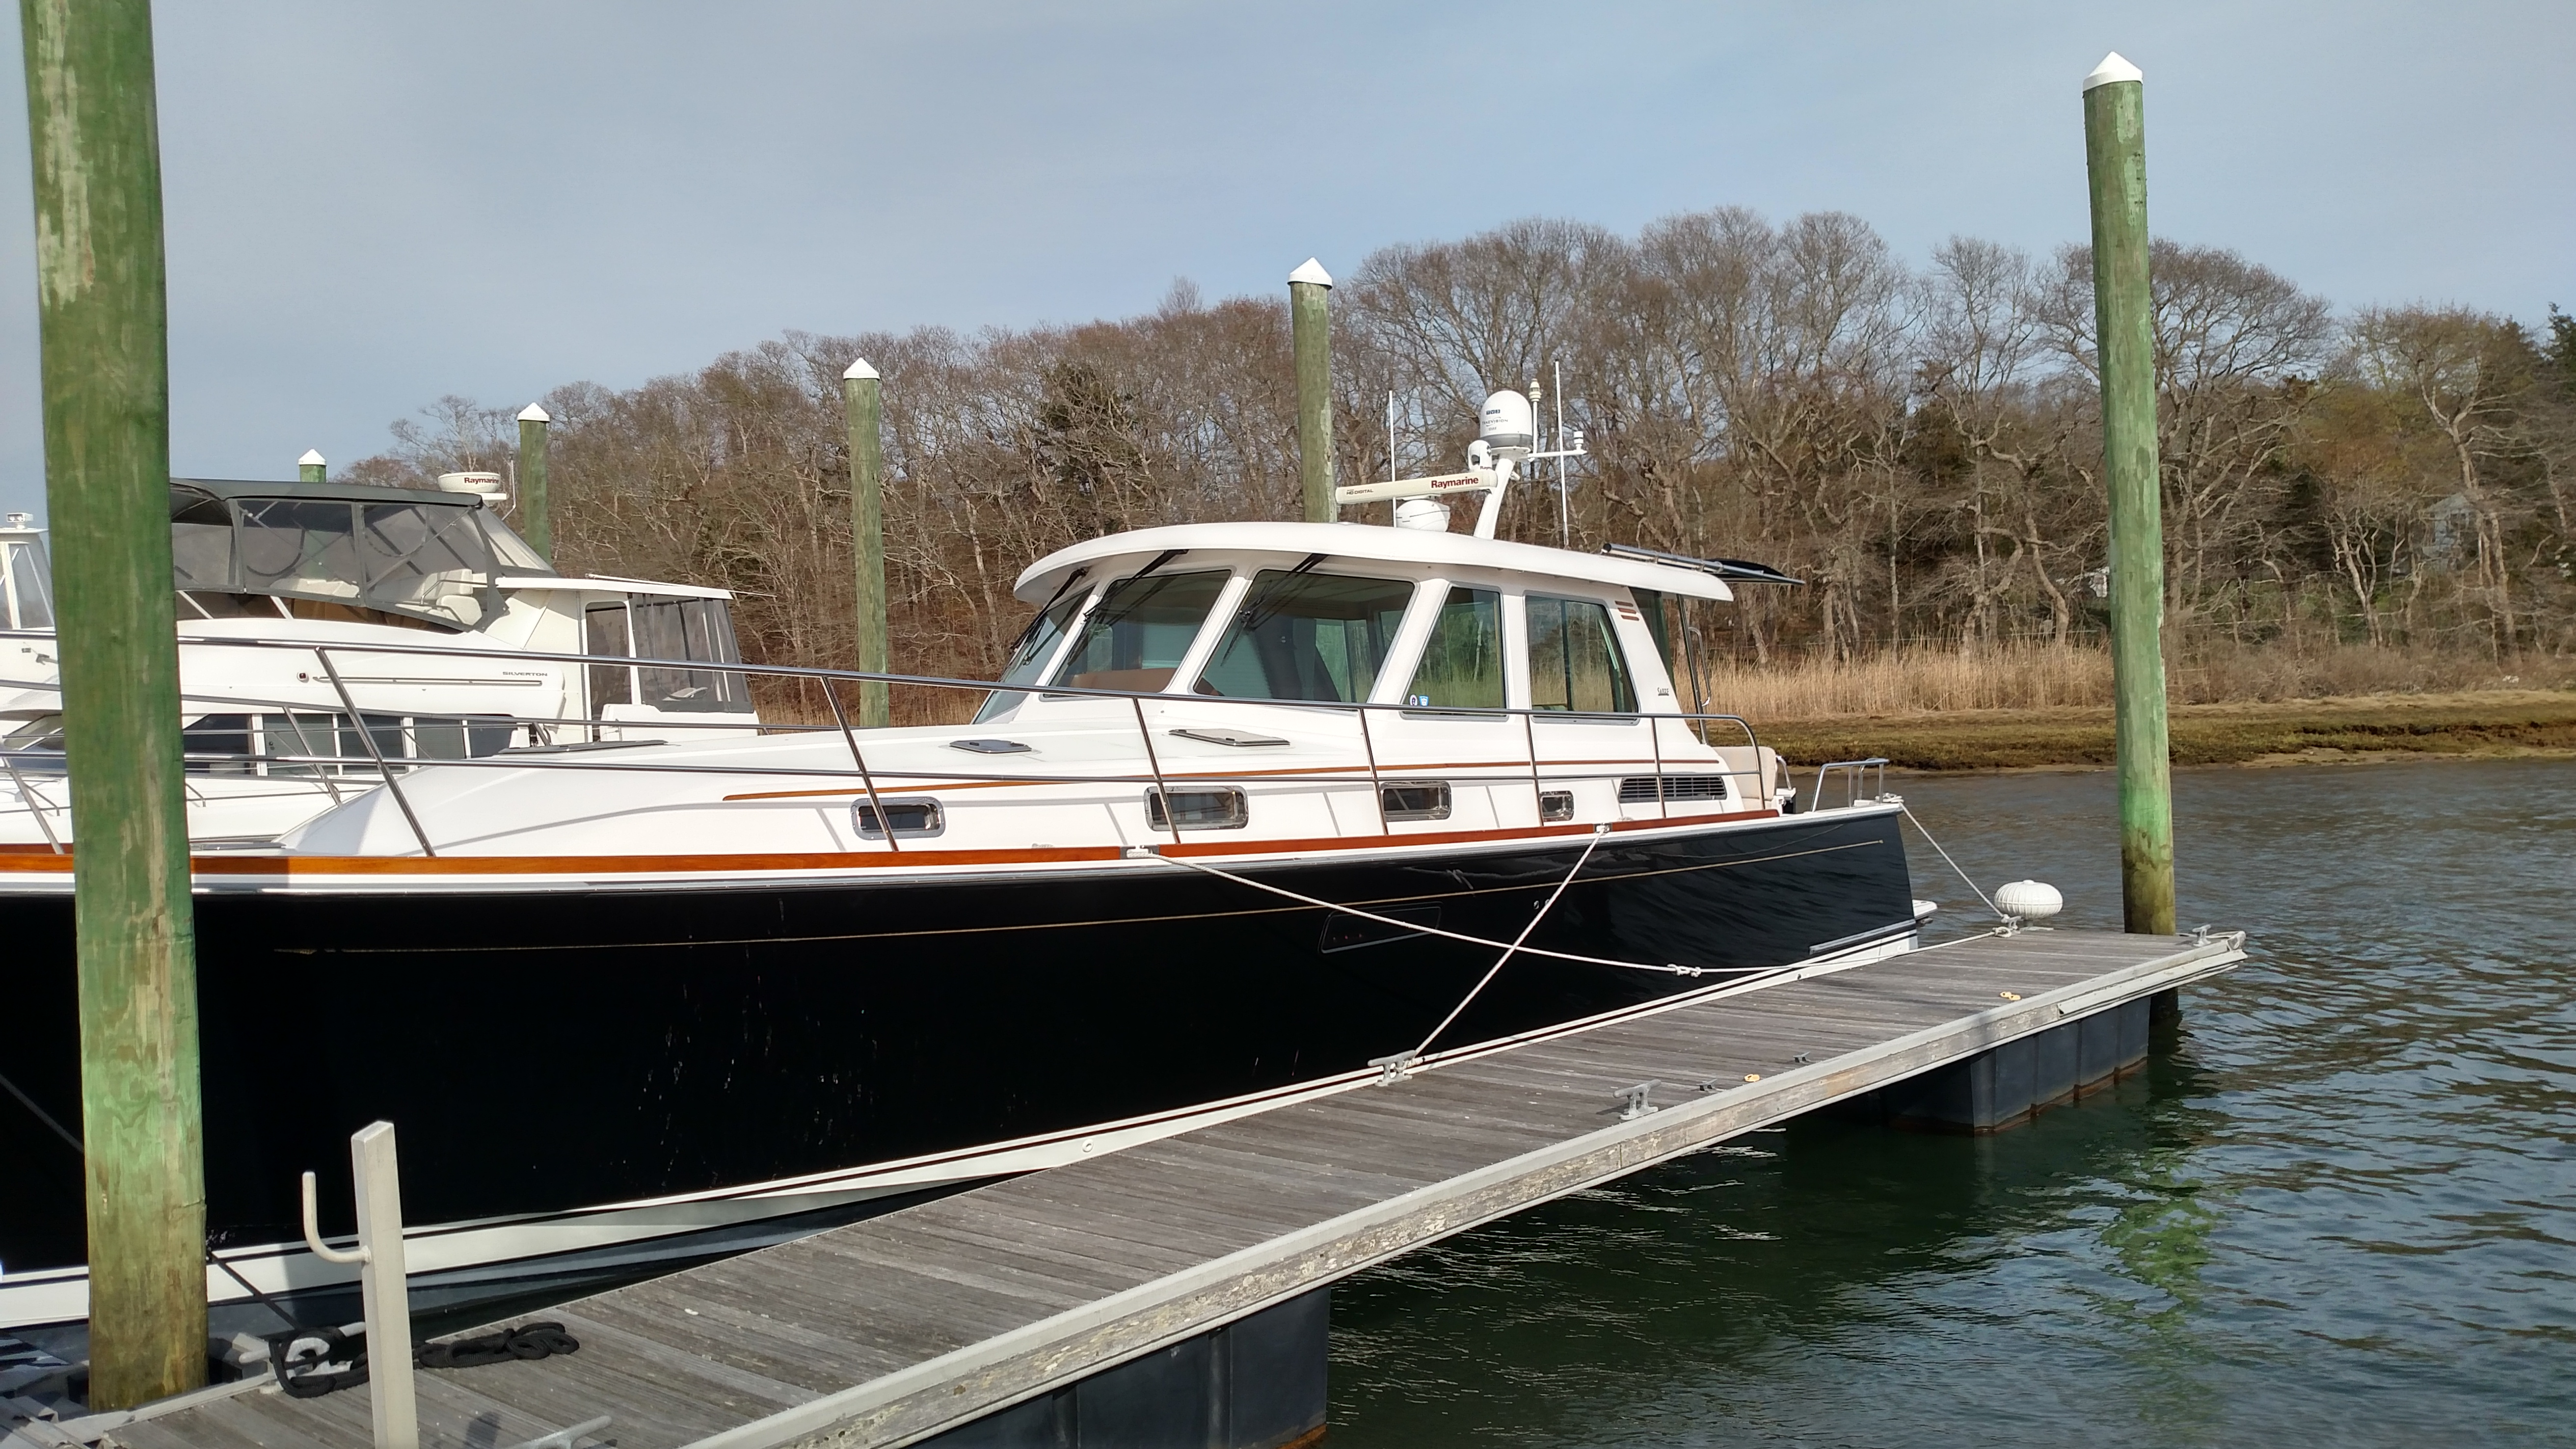 Yacht for Sale: 48' Sabre Salon Express 2012